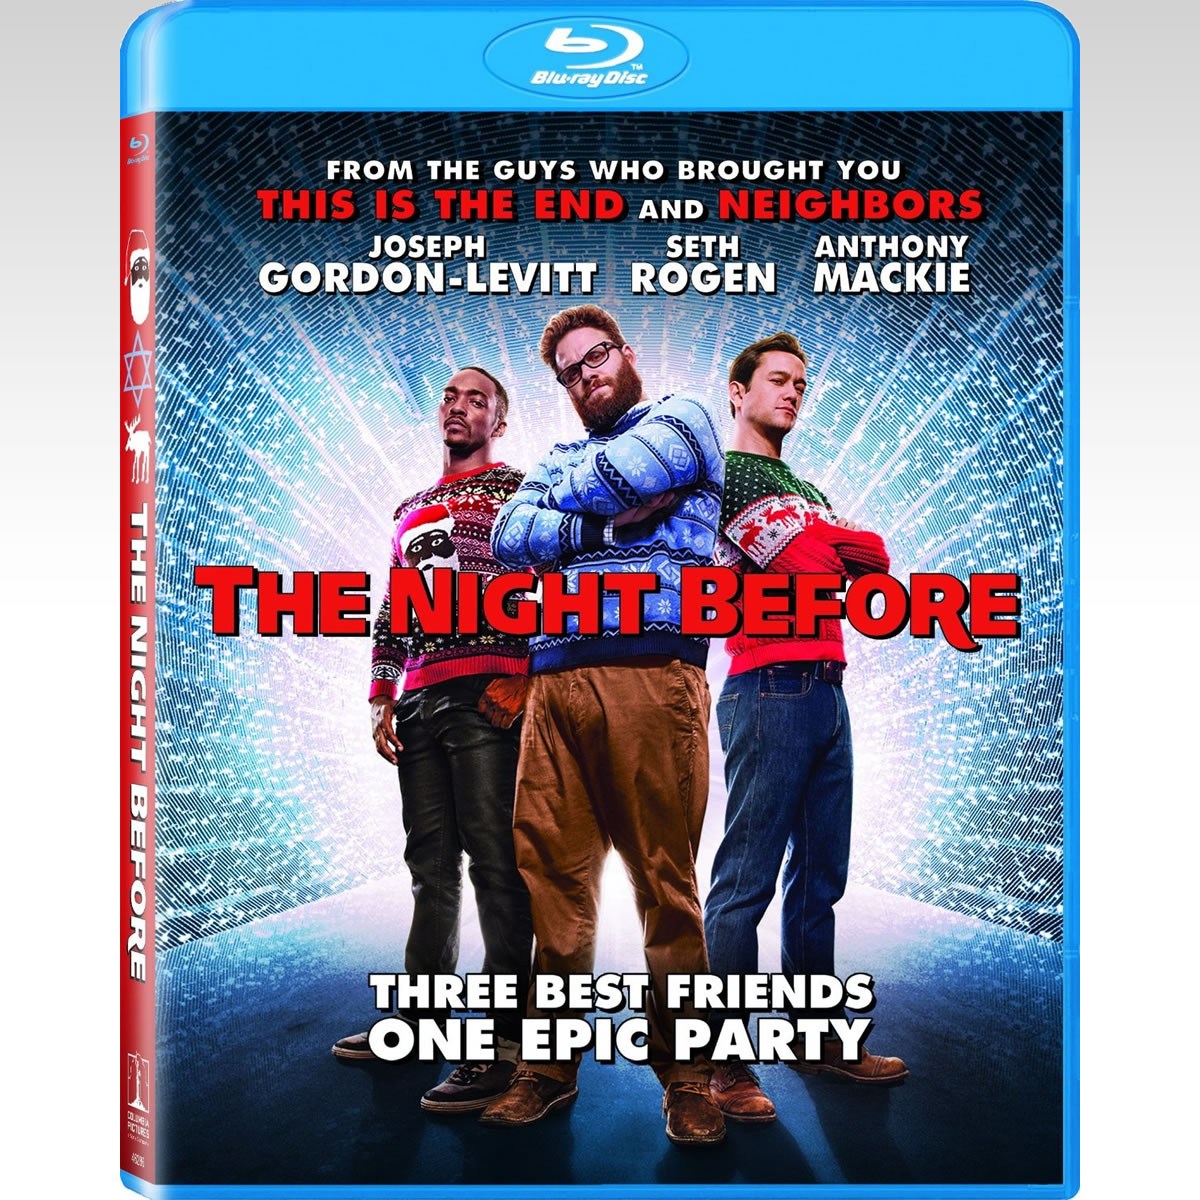 THE NIGHT BEFORE - OI ΠΑΡΤΑΚΗΔΕΣ (BLU-RAY)